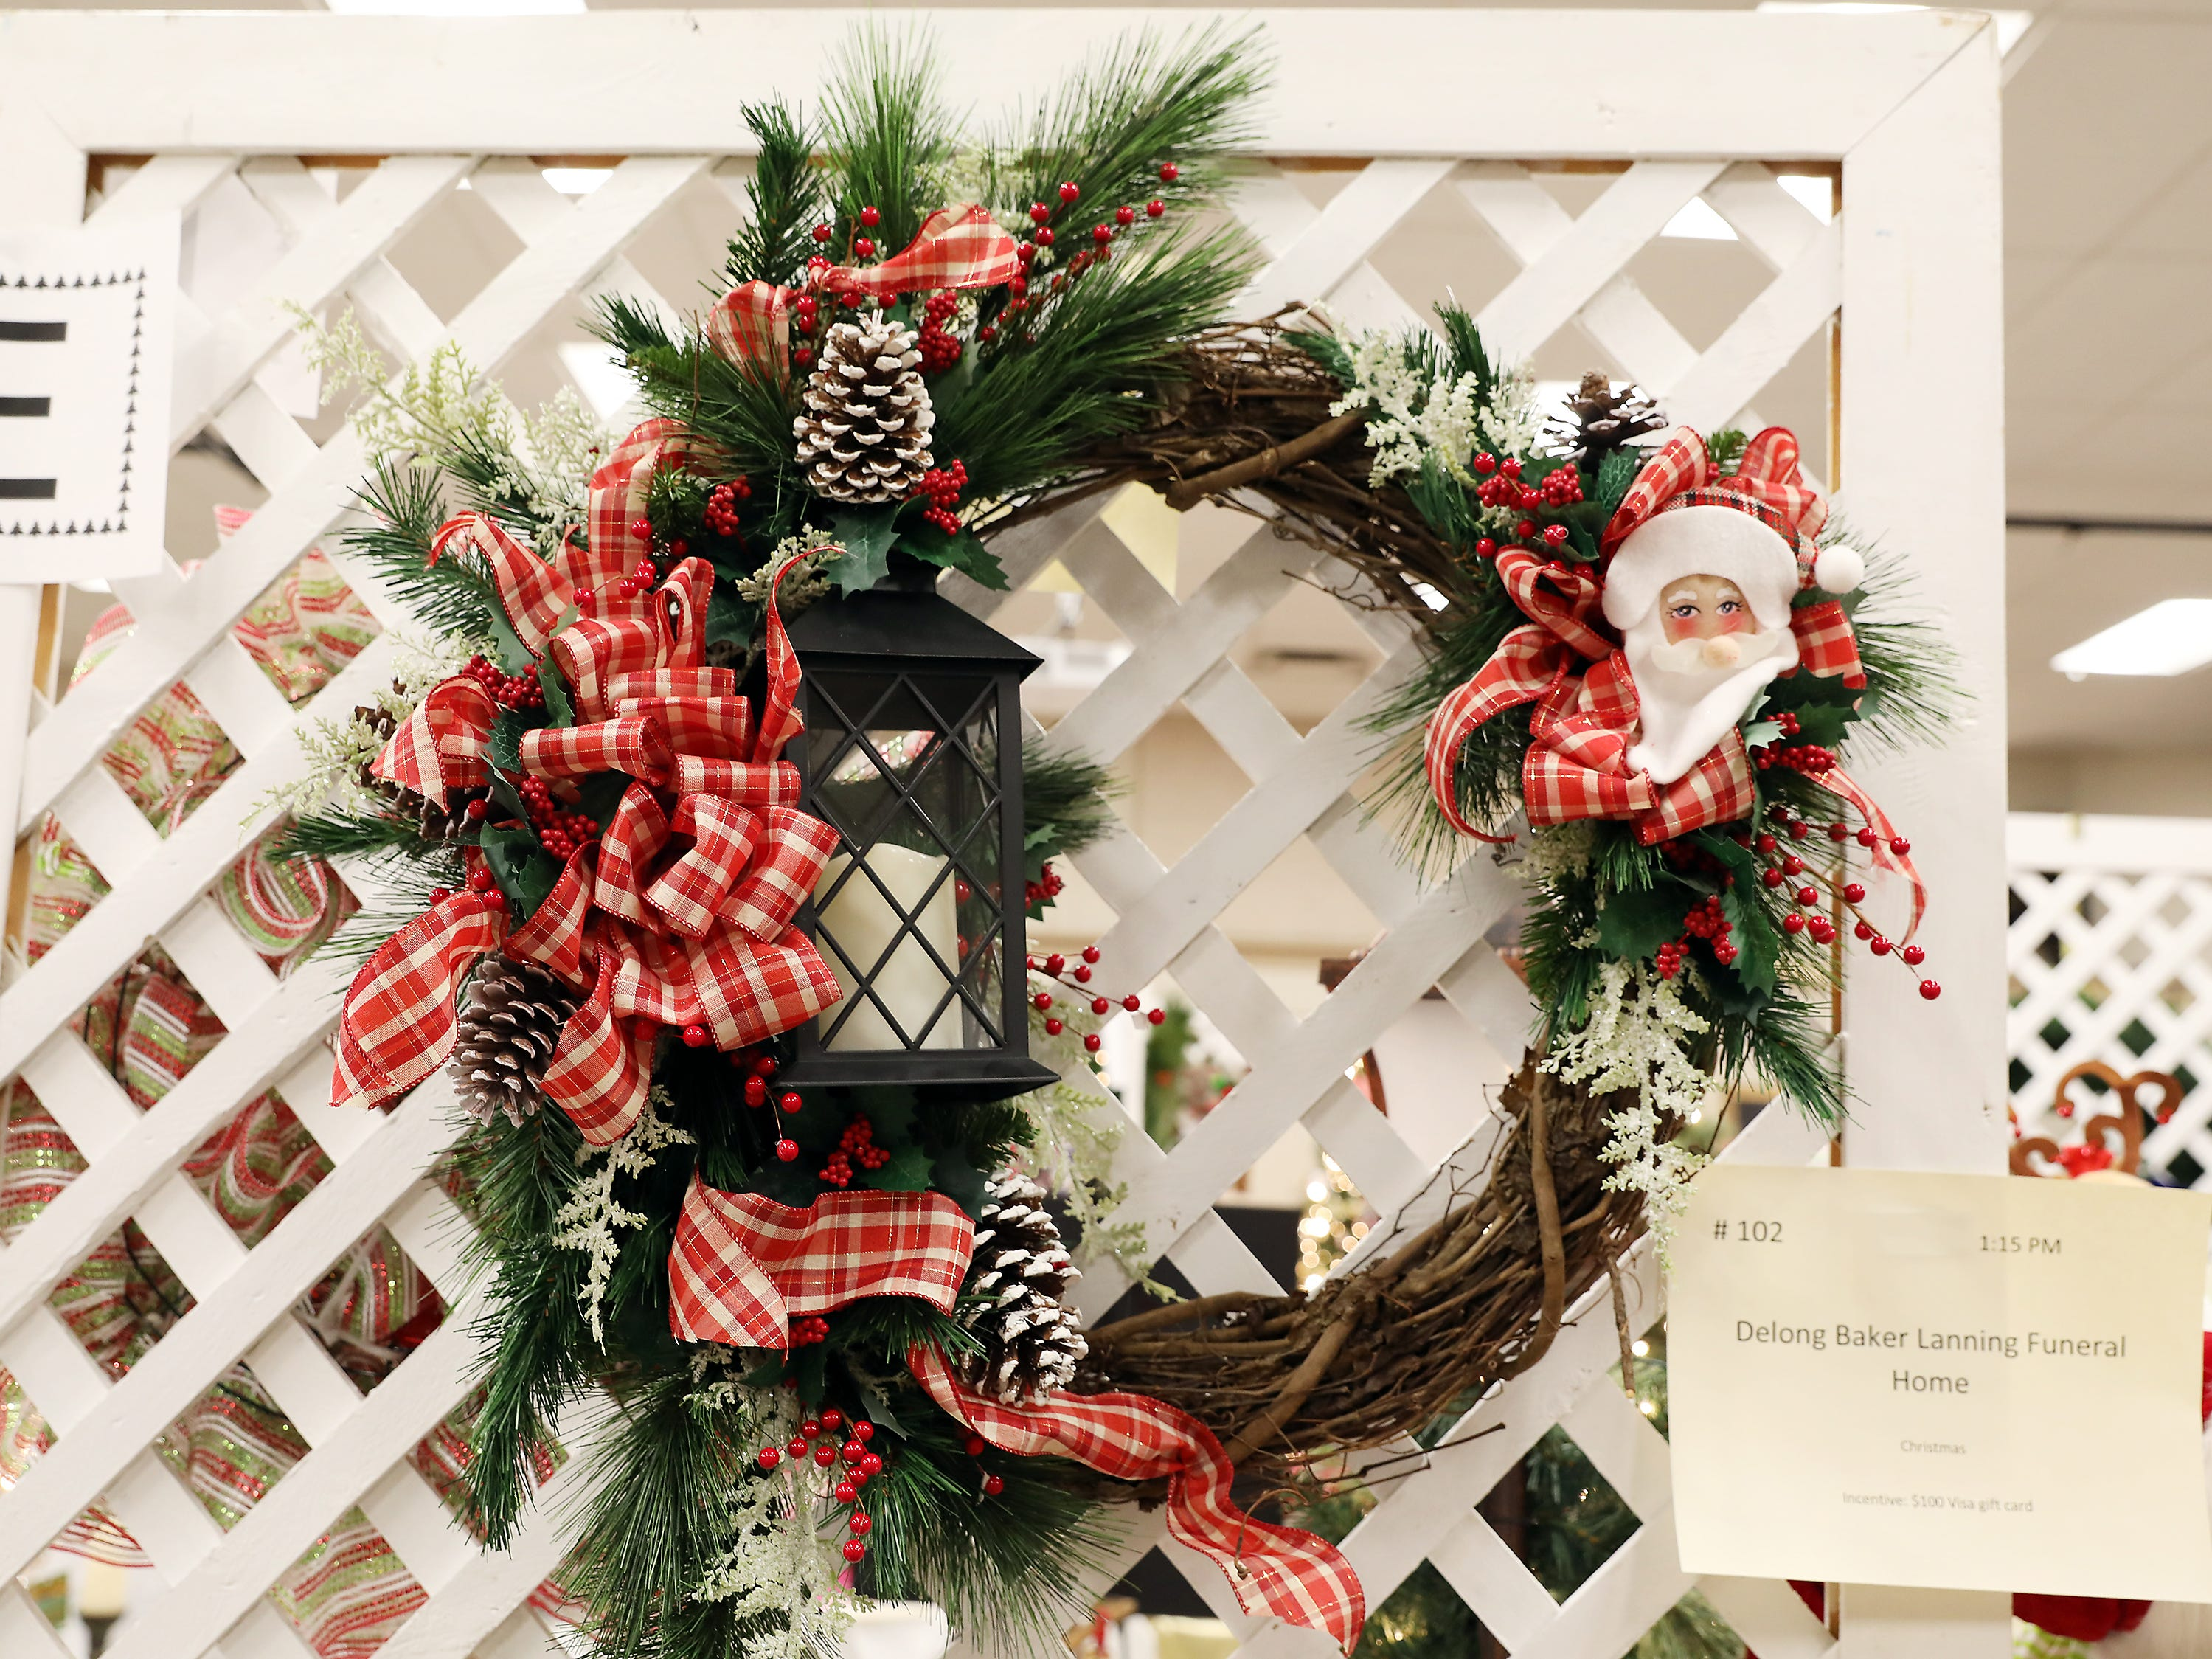 102	1:15 PM	Delong Baker Lanning Funeral Home	Wreath	Christmas	A winter wreath decorated for Christmas		$100 Visa gift card